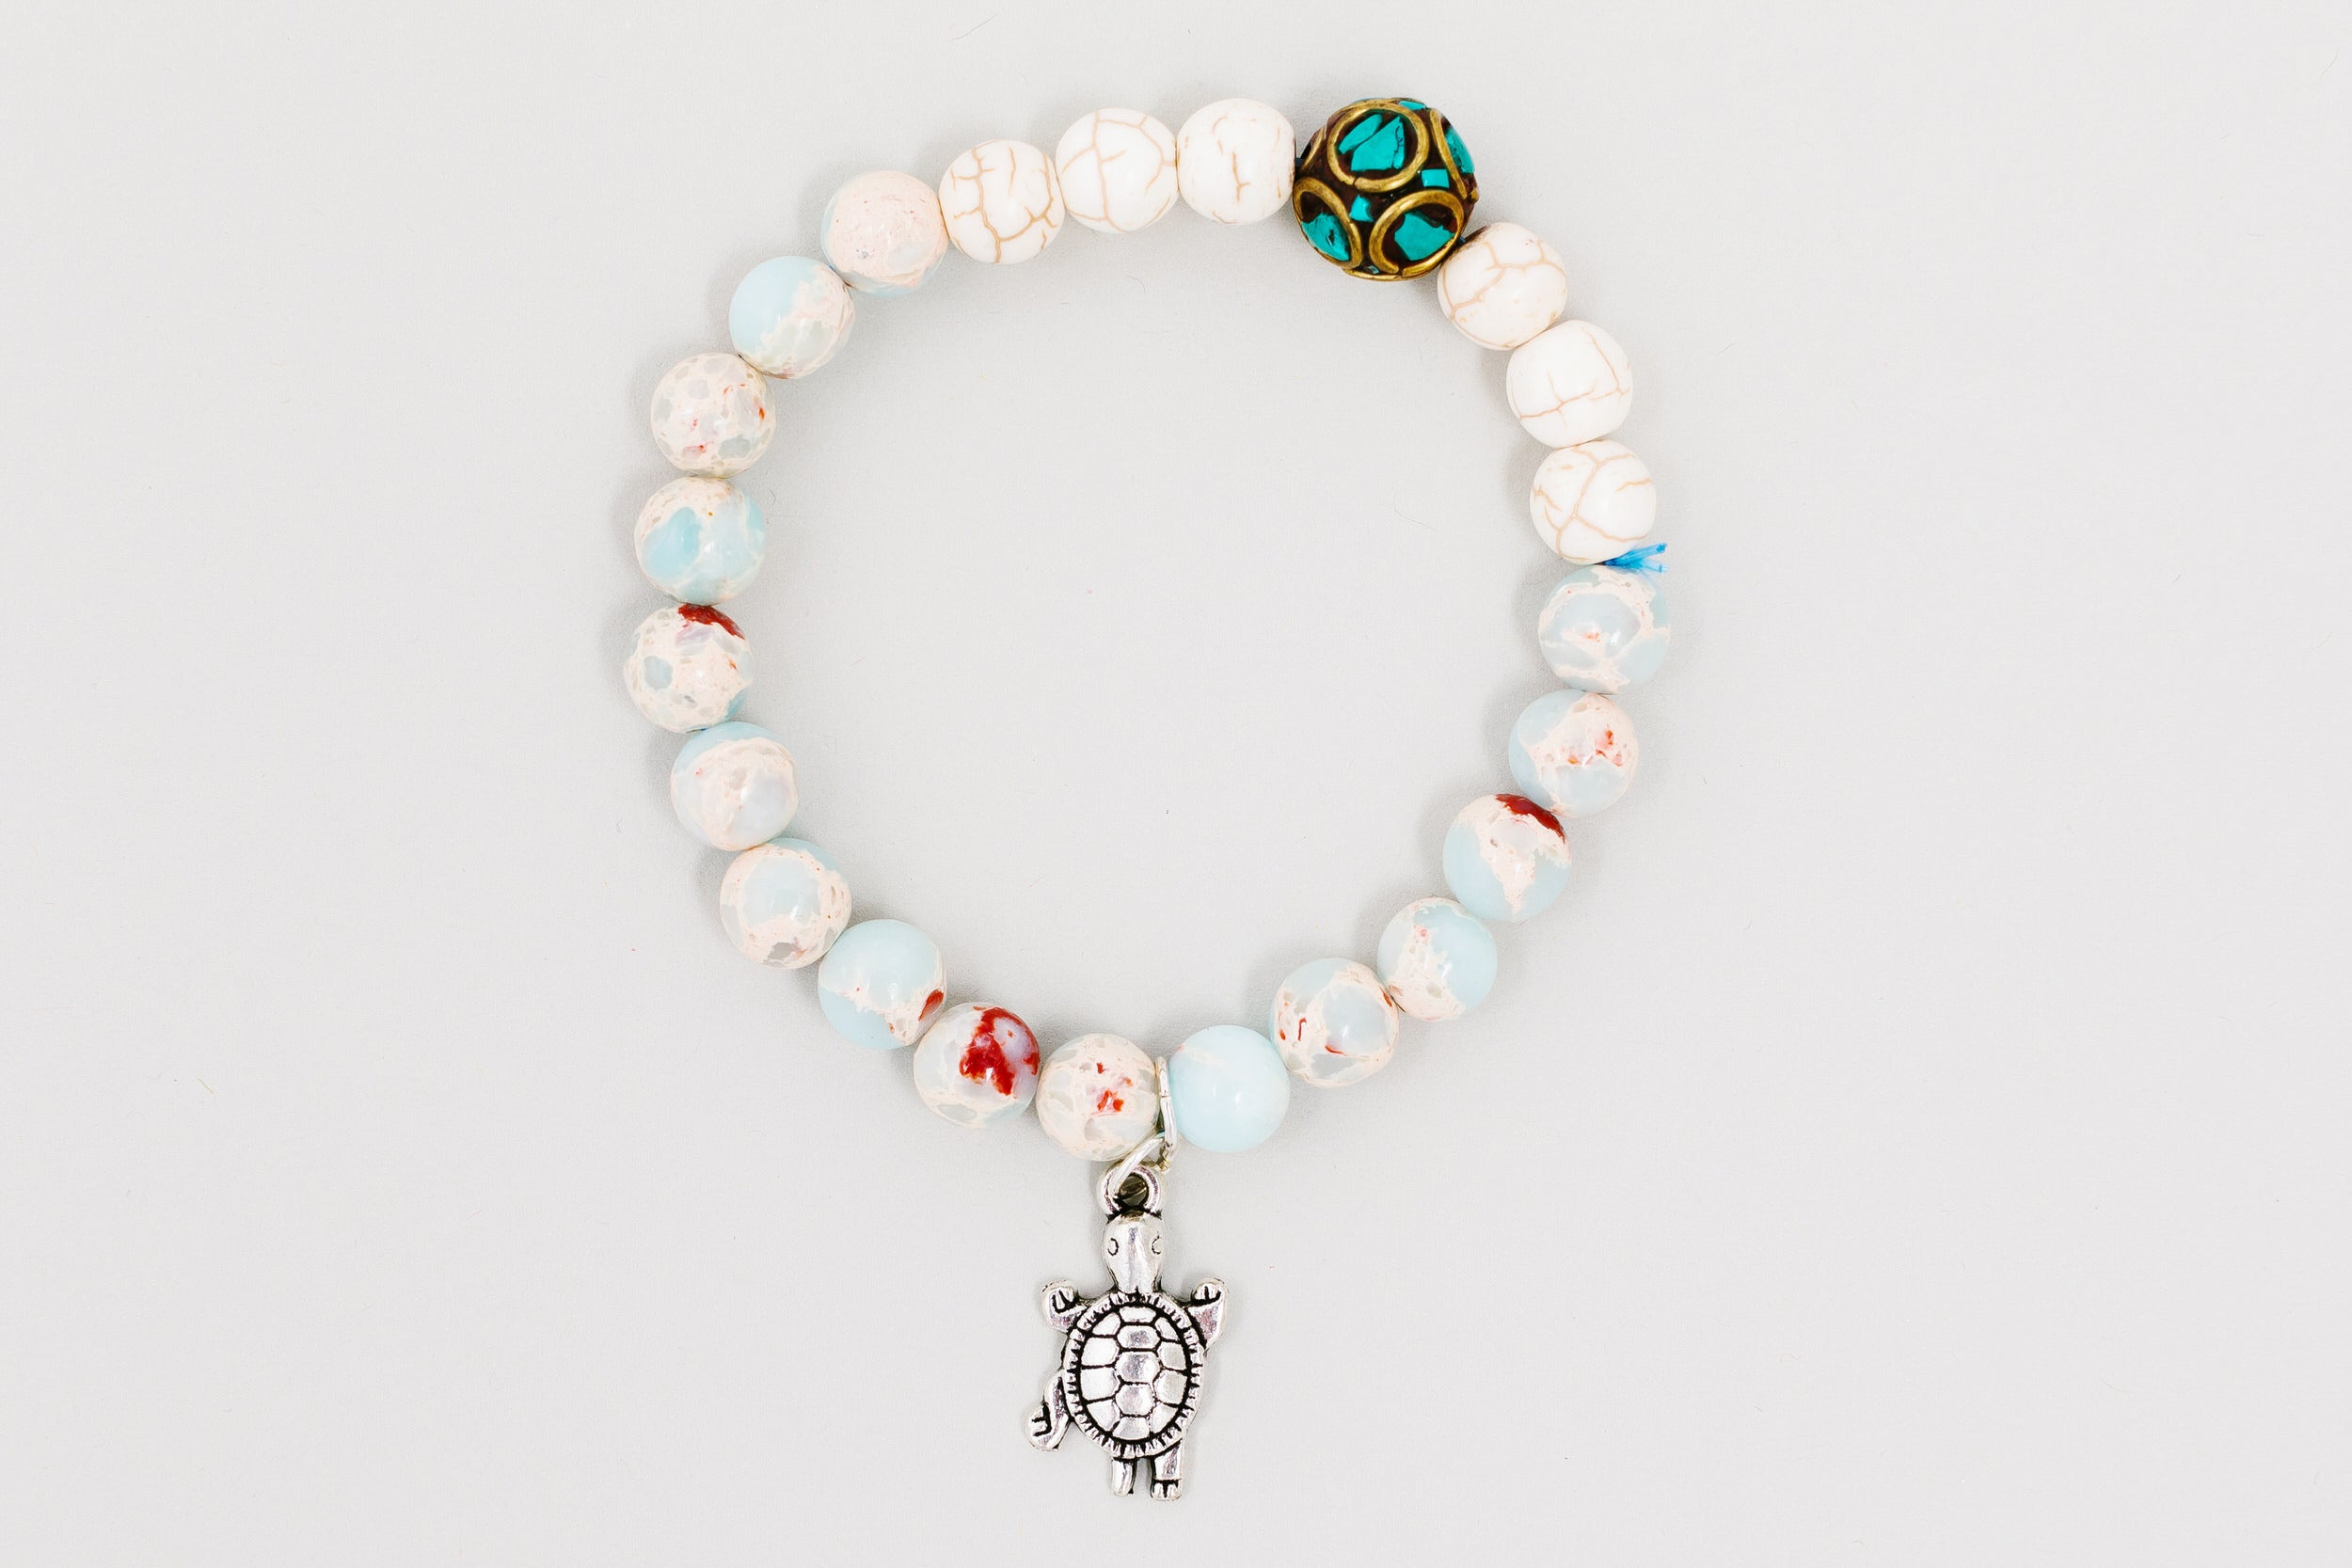 Larki Designs soft blue & off white gem stone bracelet with turtle charm